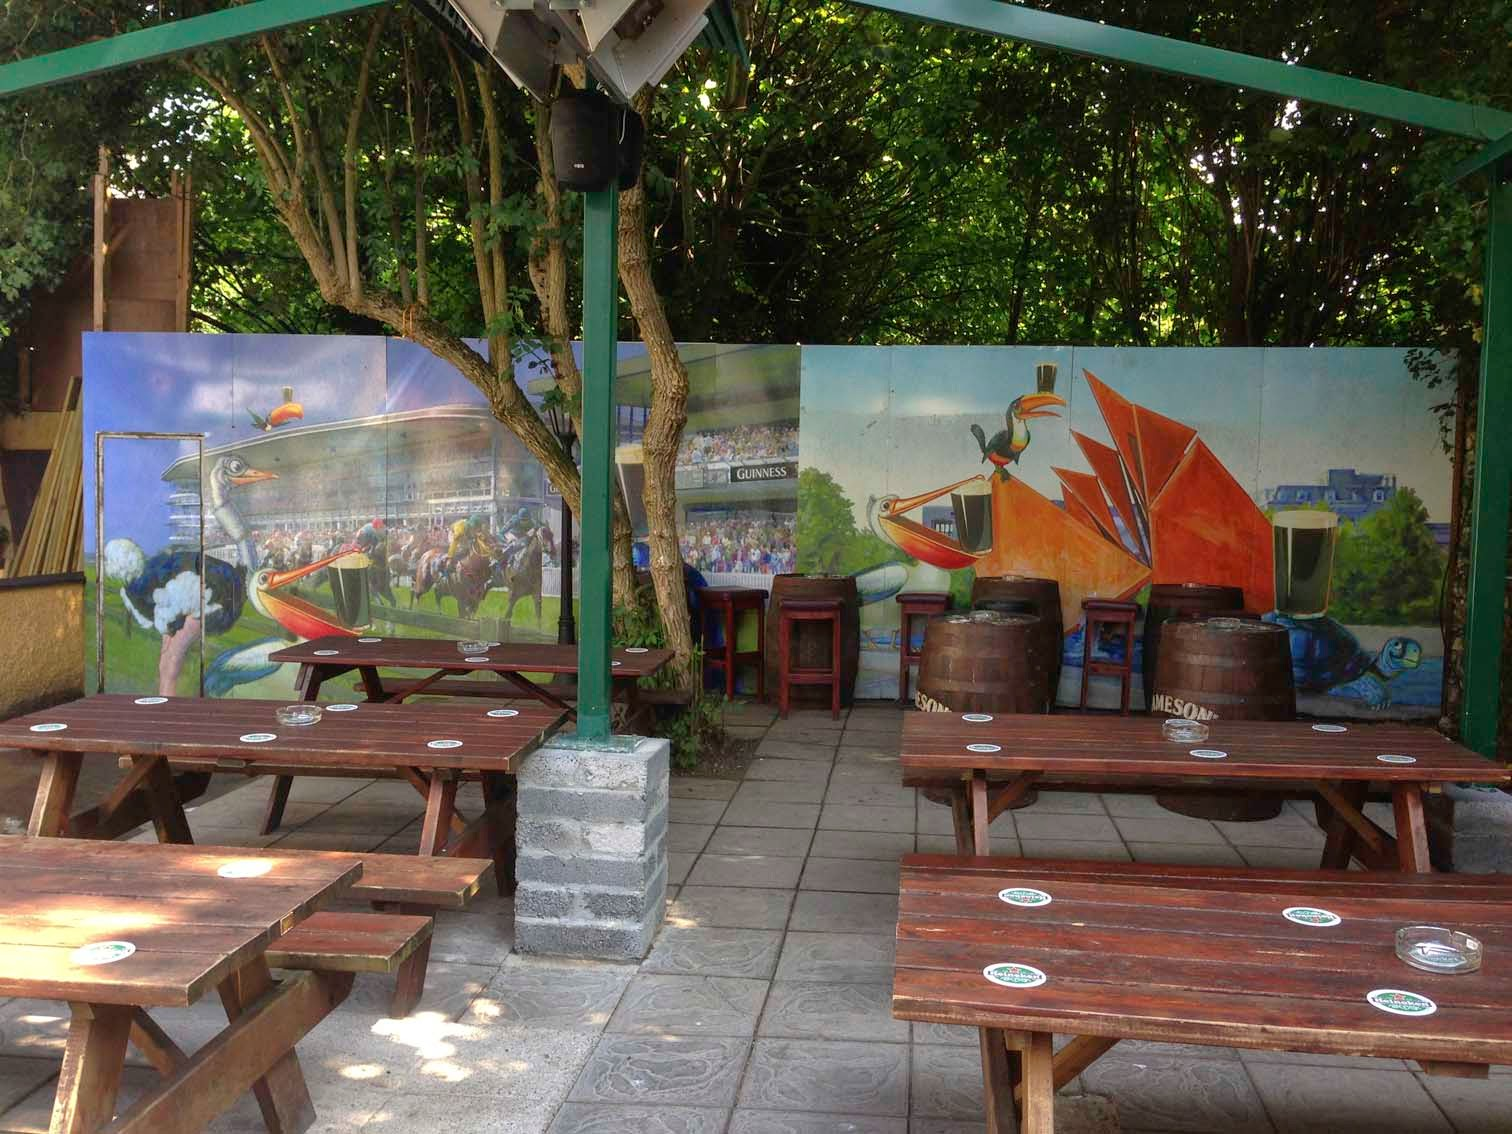 mural painting professionals featurewalls ie transforming beer